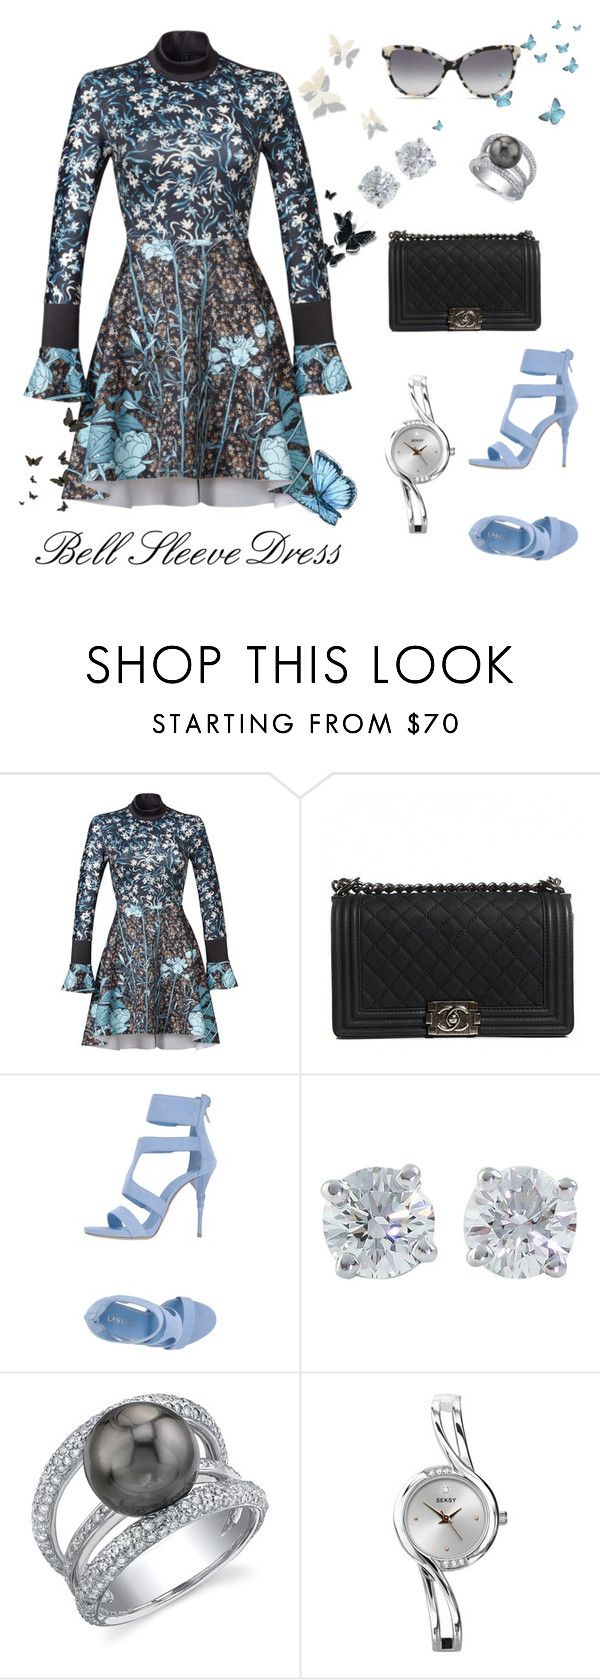 """She Feels like a Garden ..."" by krusie ❤ liked on Polyvore featuring Clover Canyon, Chanel, Le Silla, Tiffany & Co., STELLA McCARTNEY and Disney"